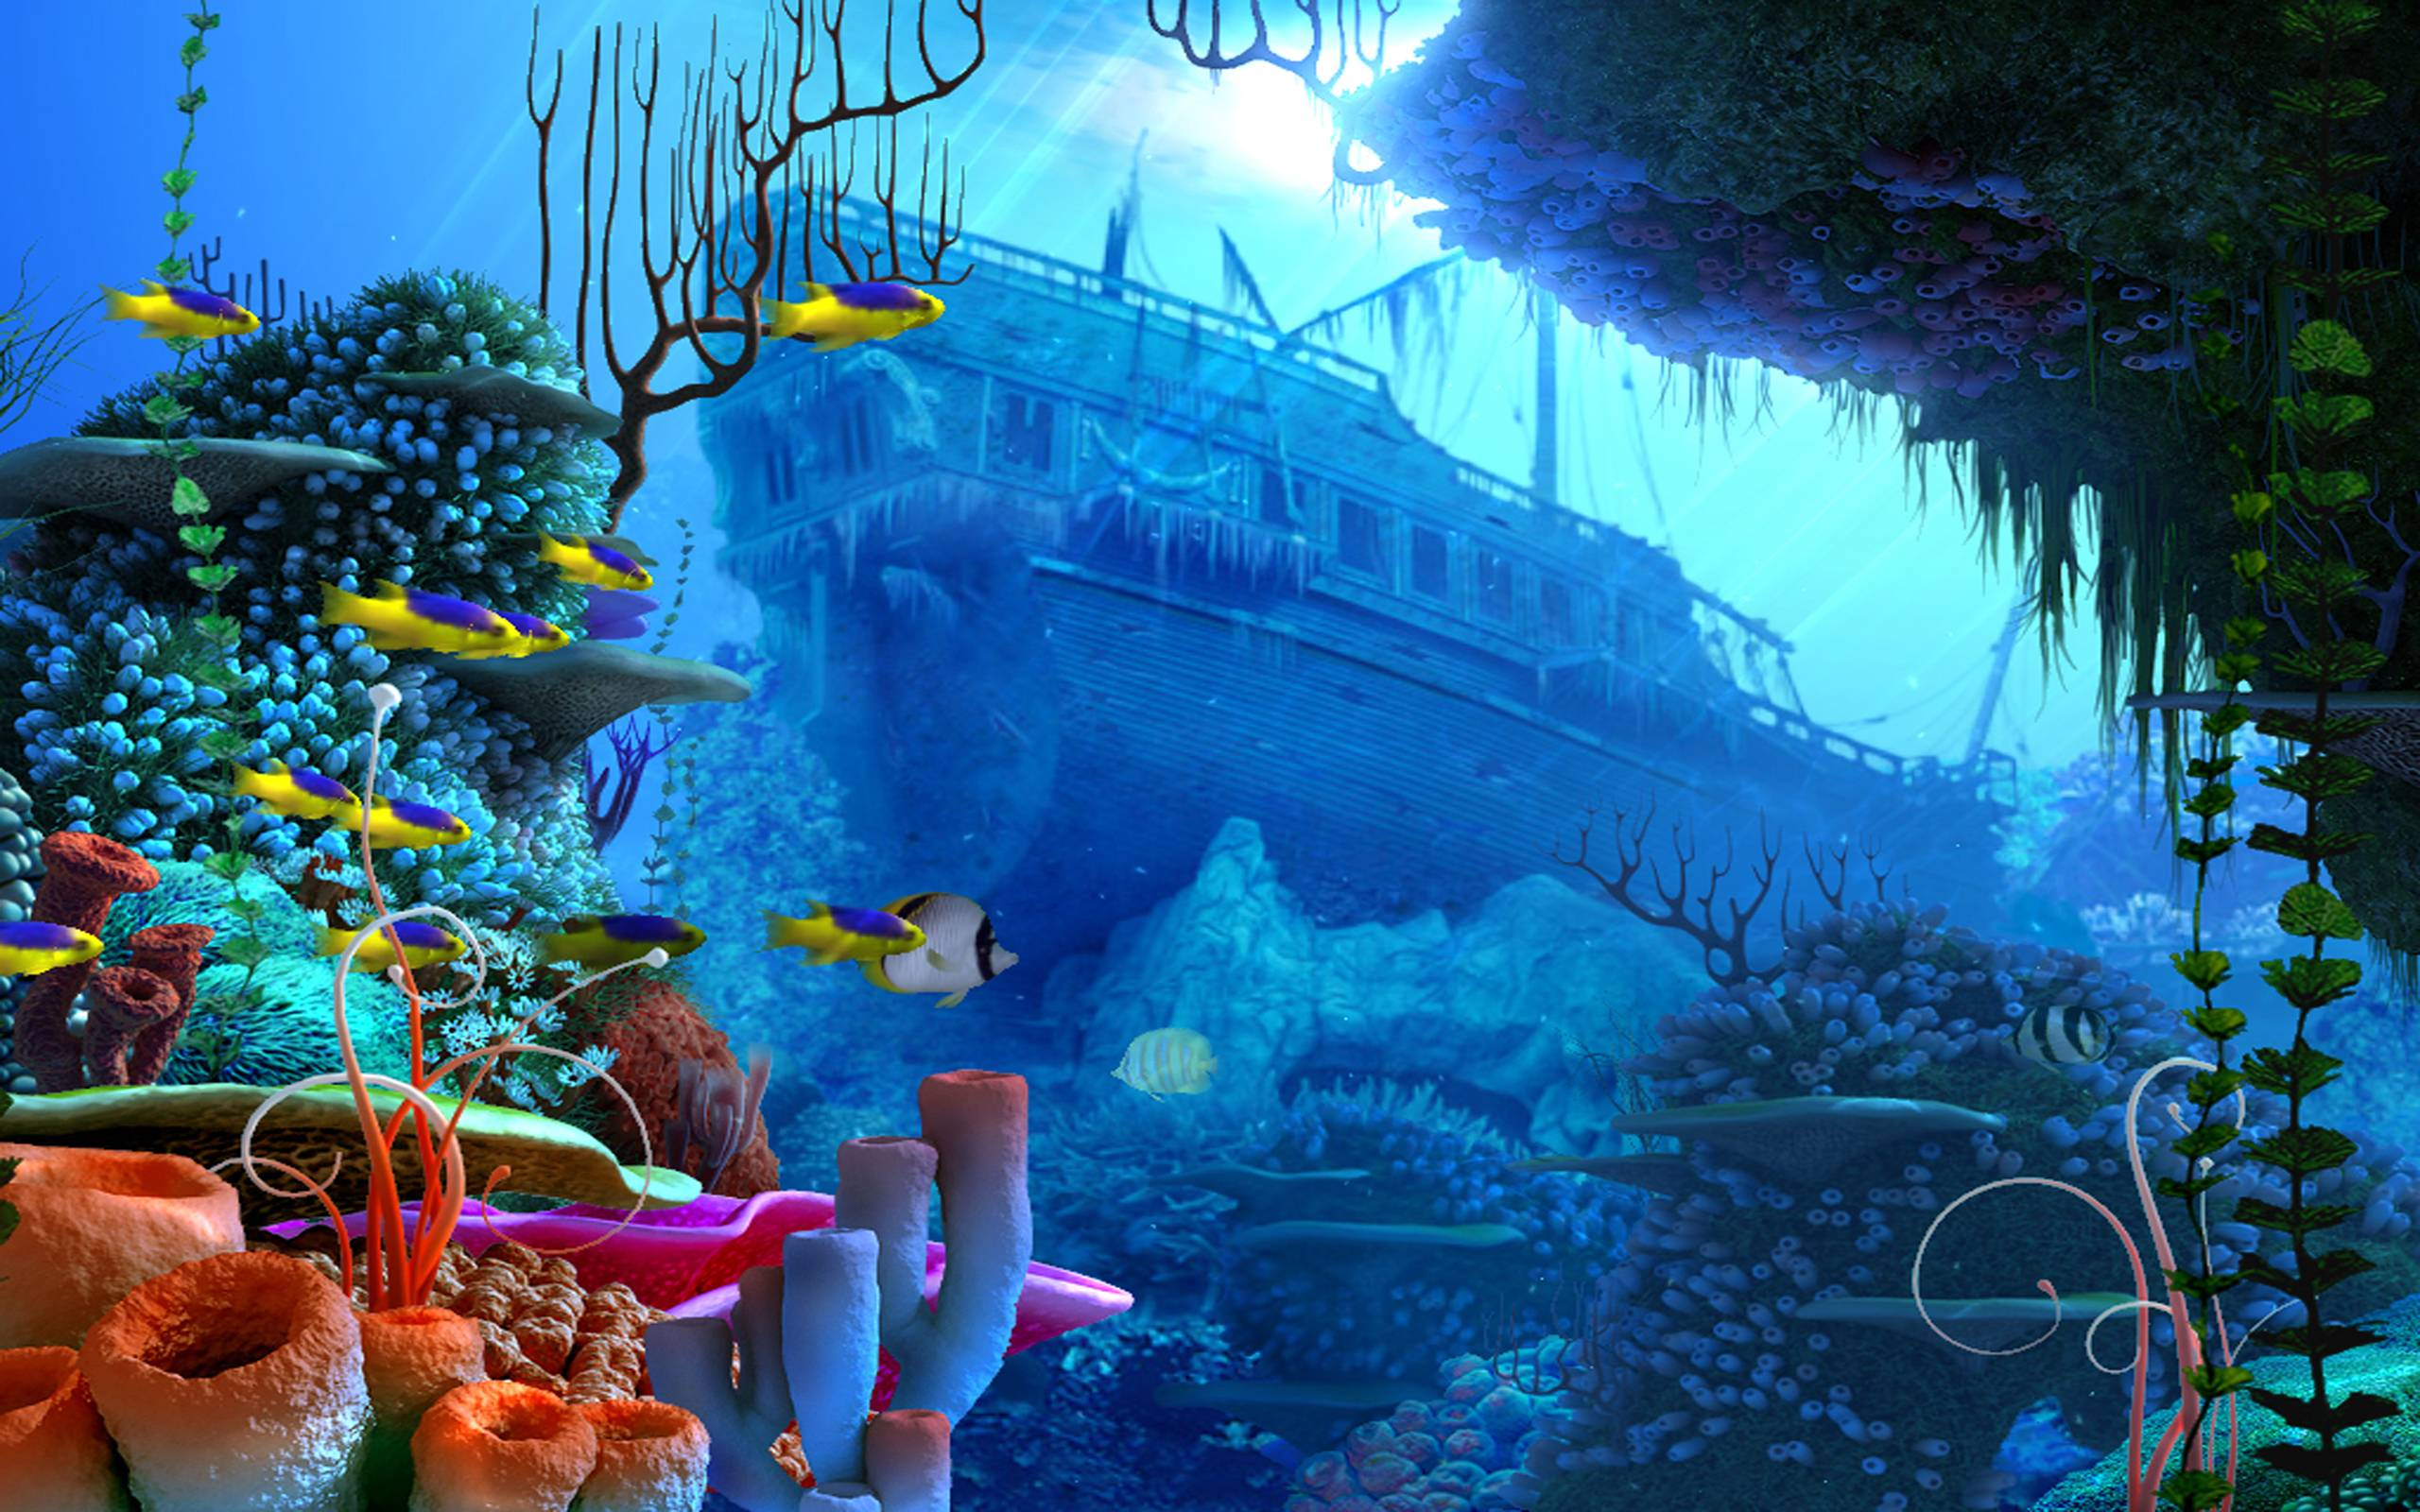 ocean wallpaper underwater underwater wallpapers wallpaper cave 156